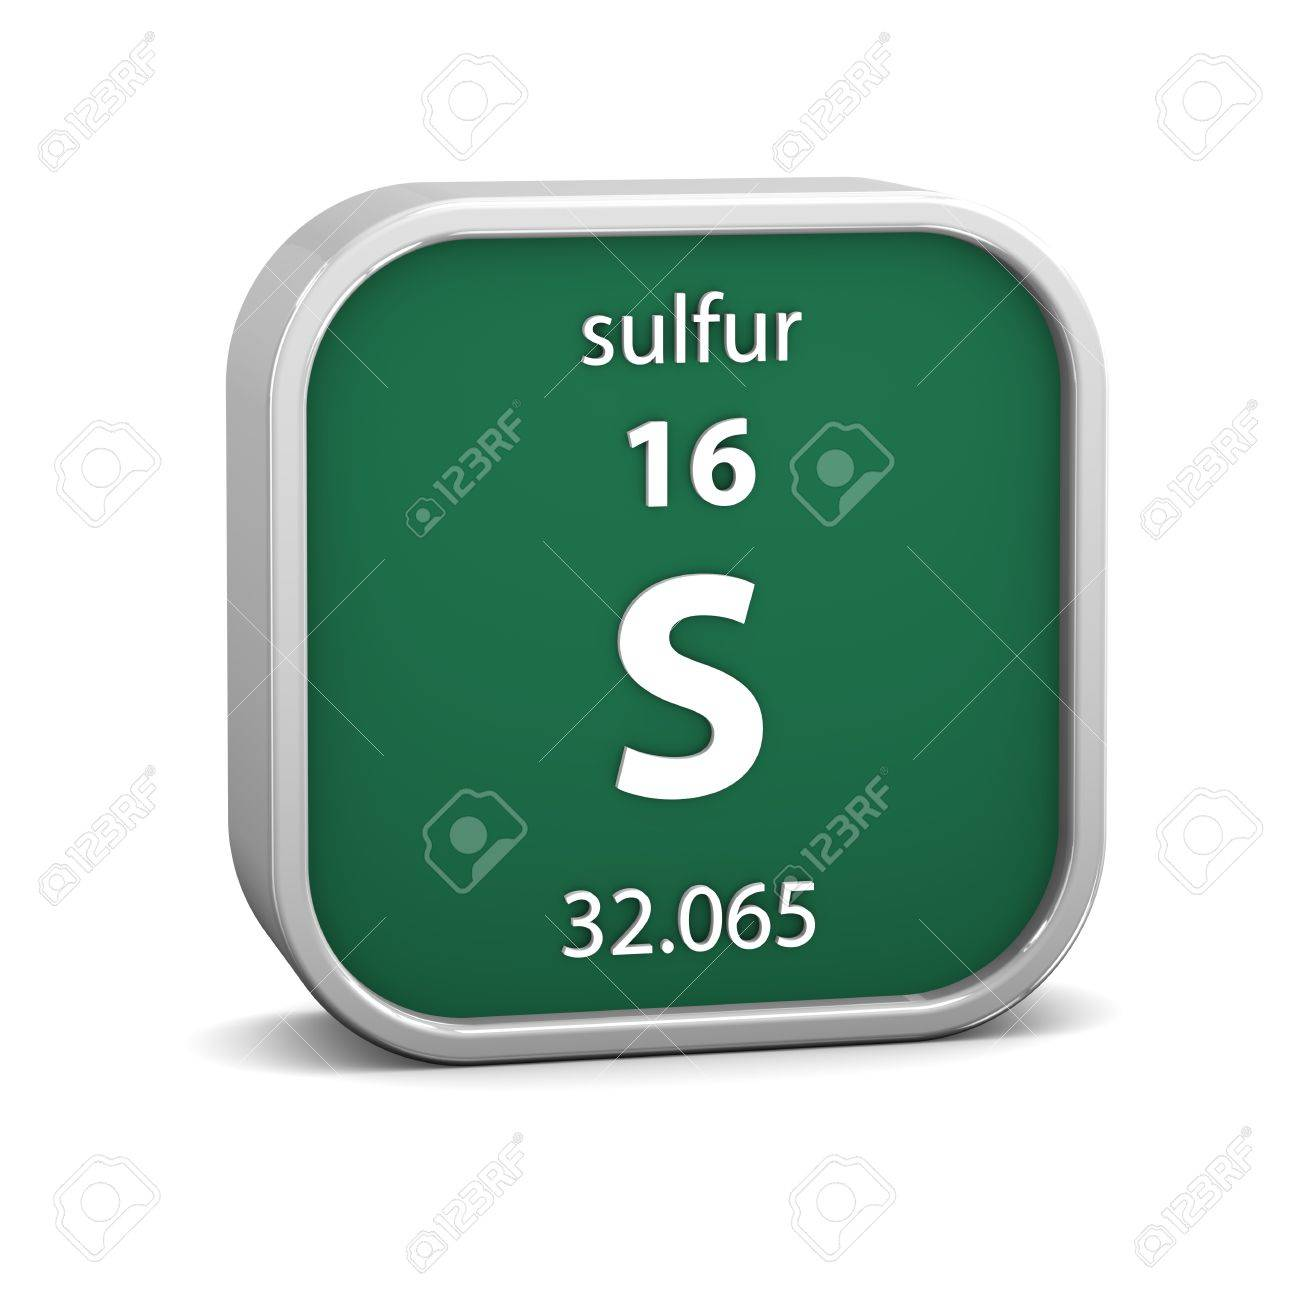 What is the symbol for sulfur on the periodic table image sulfur material on the periodic table part of a series stock sulfur material on the periodic gamestrikefo Image collections